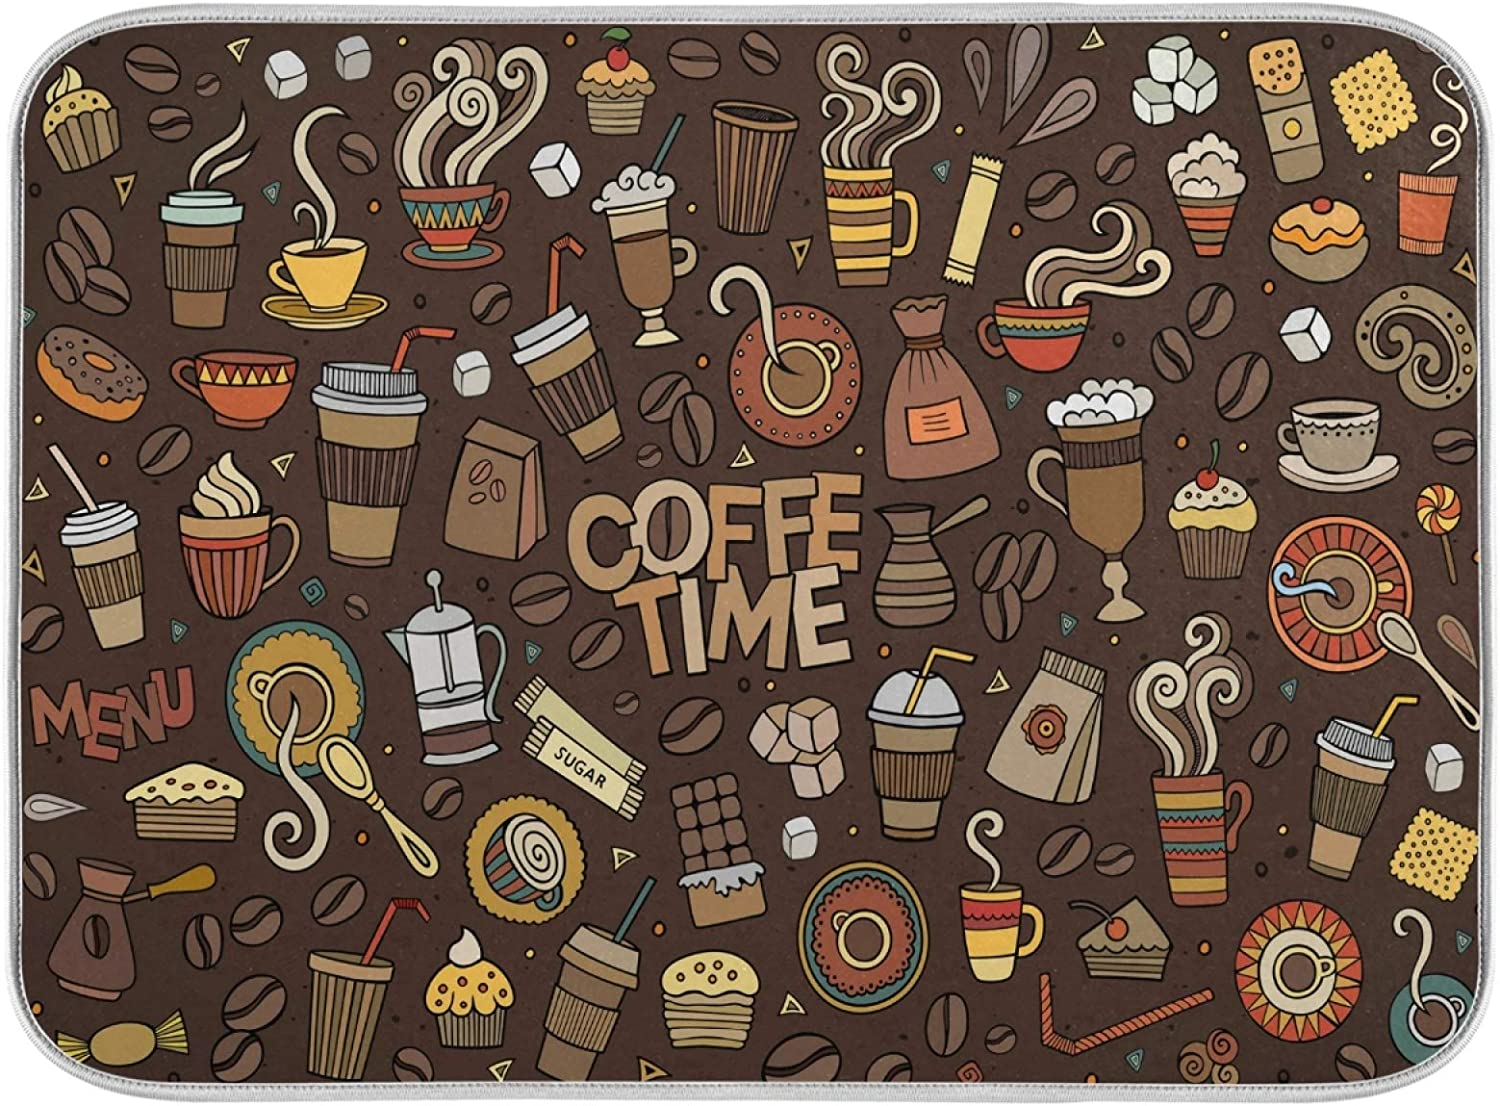 Oarencol Coffee Time Dish Drying Mat Absorbent Max 84% OFF Beans Max 53% OFF Brown Cups